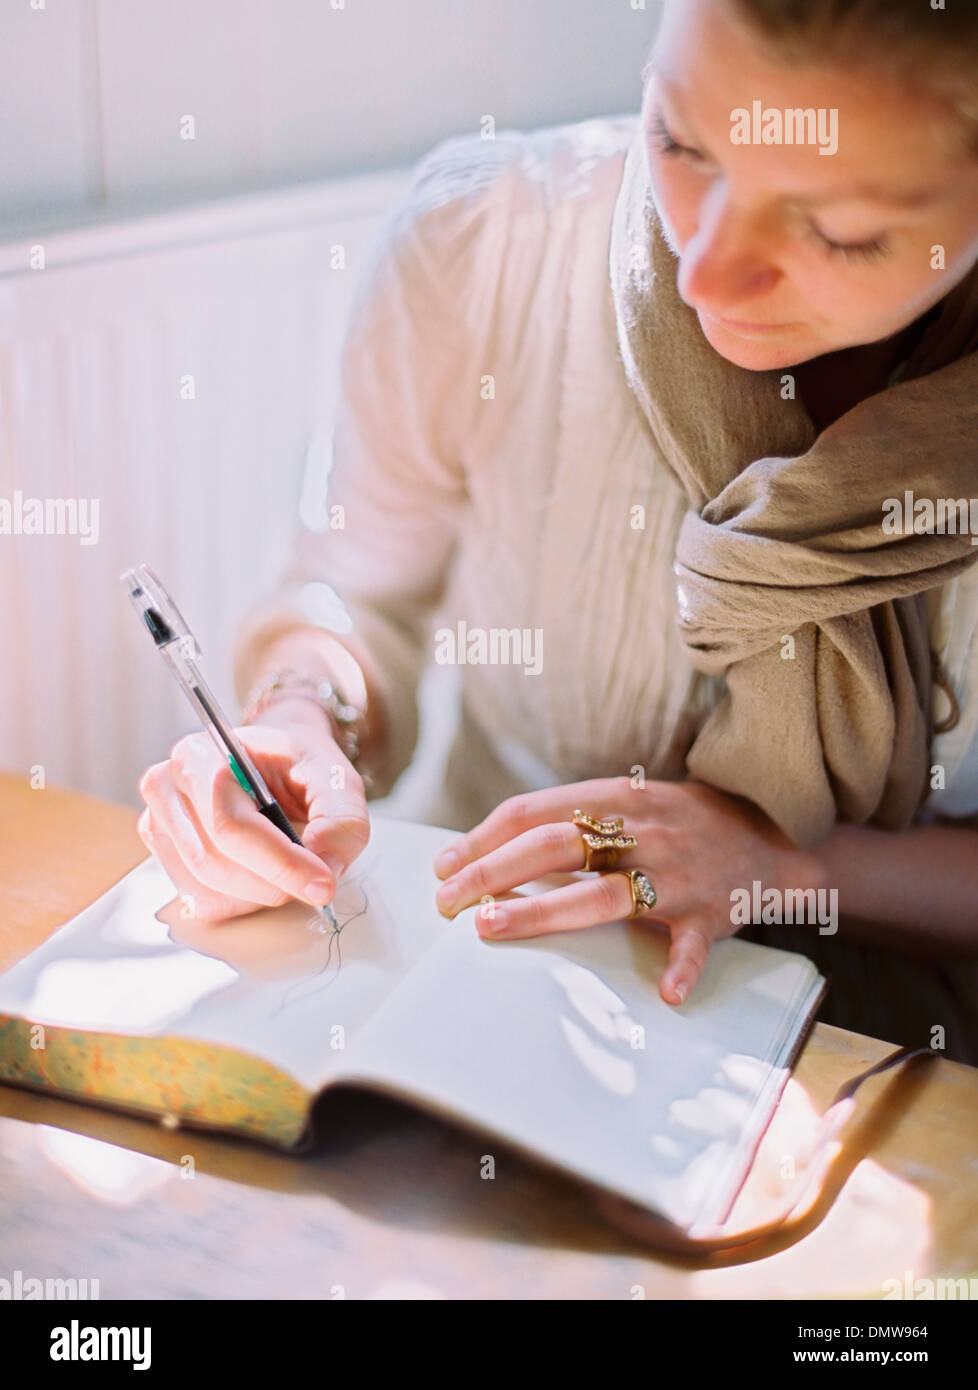 A woman using a coloured pen drawing on a blank page of a diary. - Stock Image